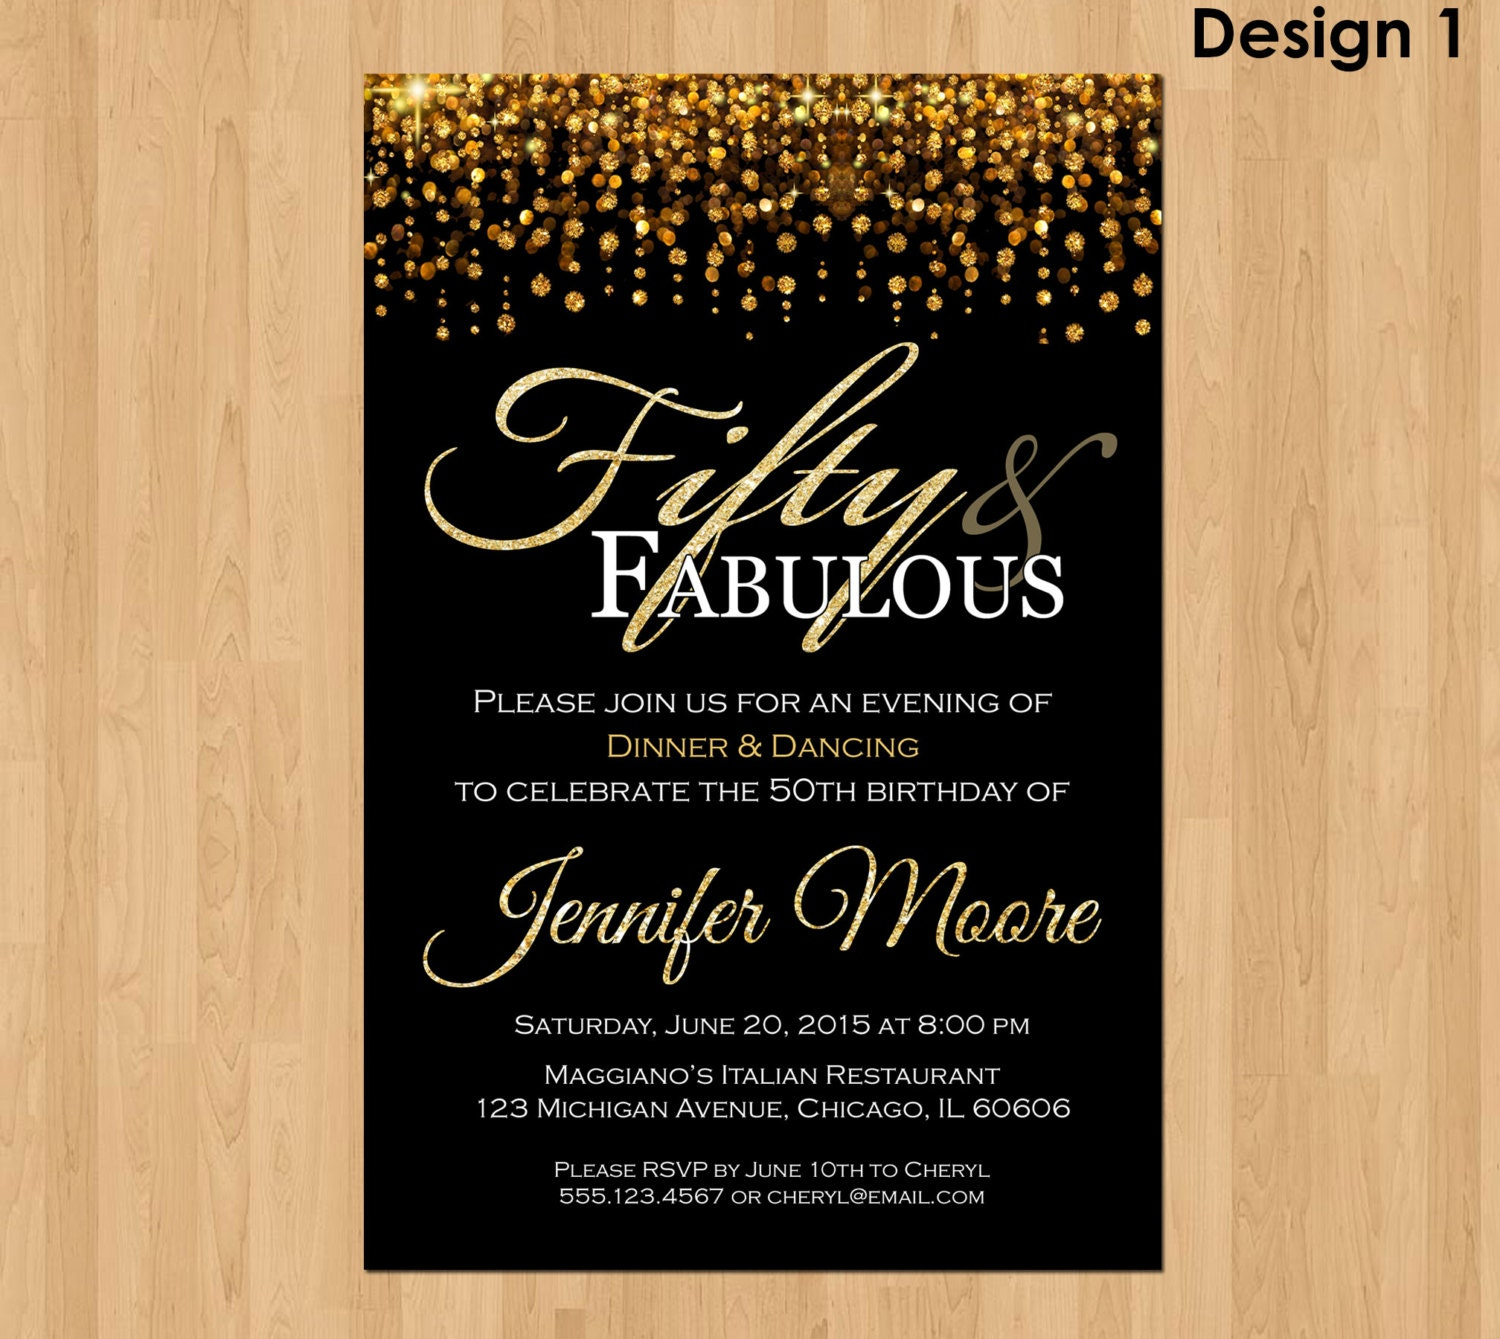 50th invitations birthday invitation fabulous fifty party templates invites invite template cards milestone unique card geburtstagseinladung word gold einladung male